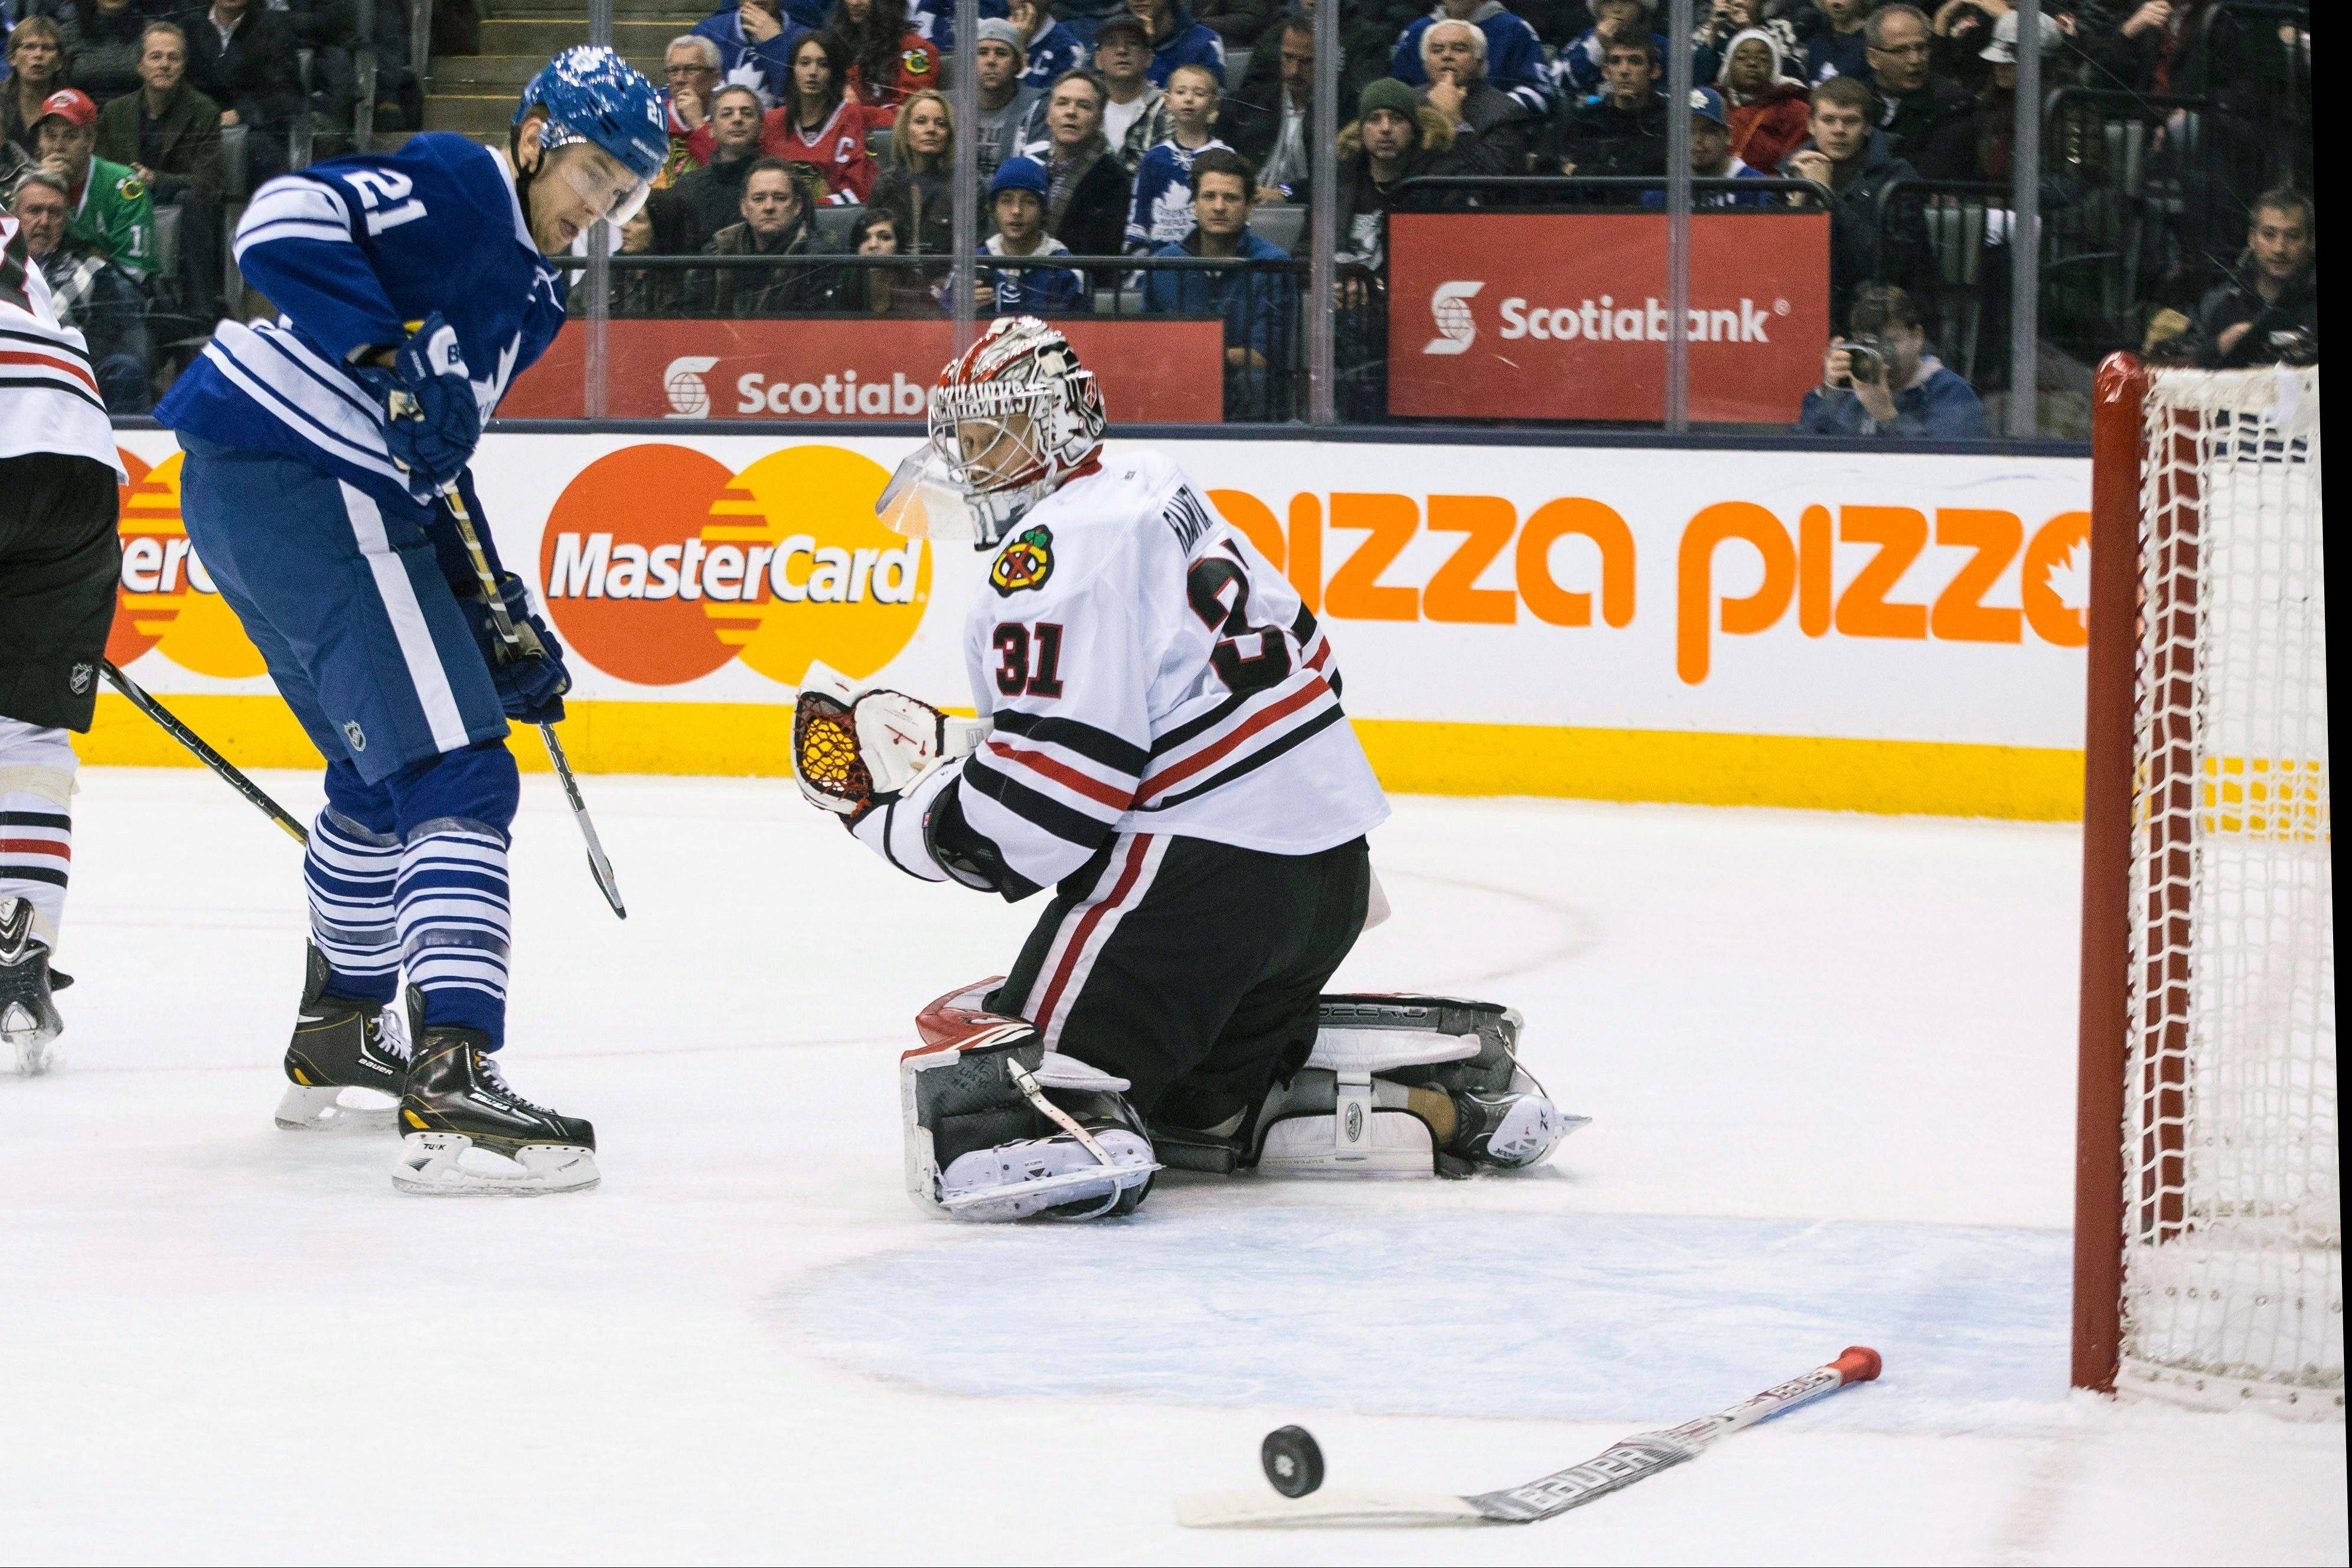 Hawks goalie Antti Raanta loses his stick as a shot by the Leafs James van Riemsdyk slides wide of the net Saturday night in Toronto.